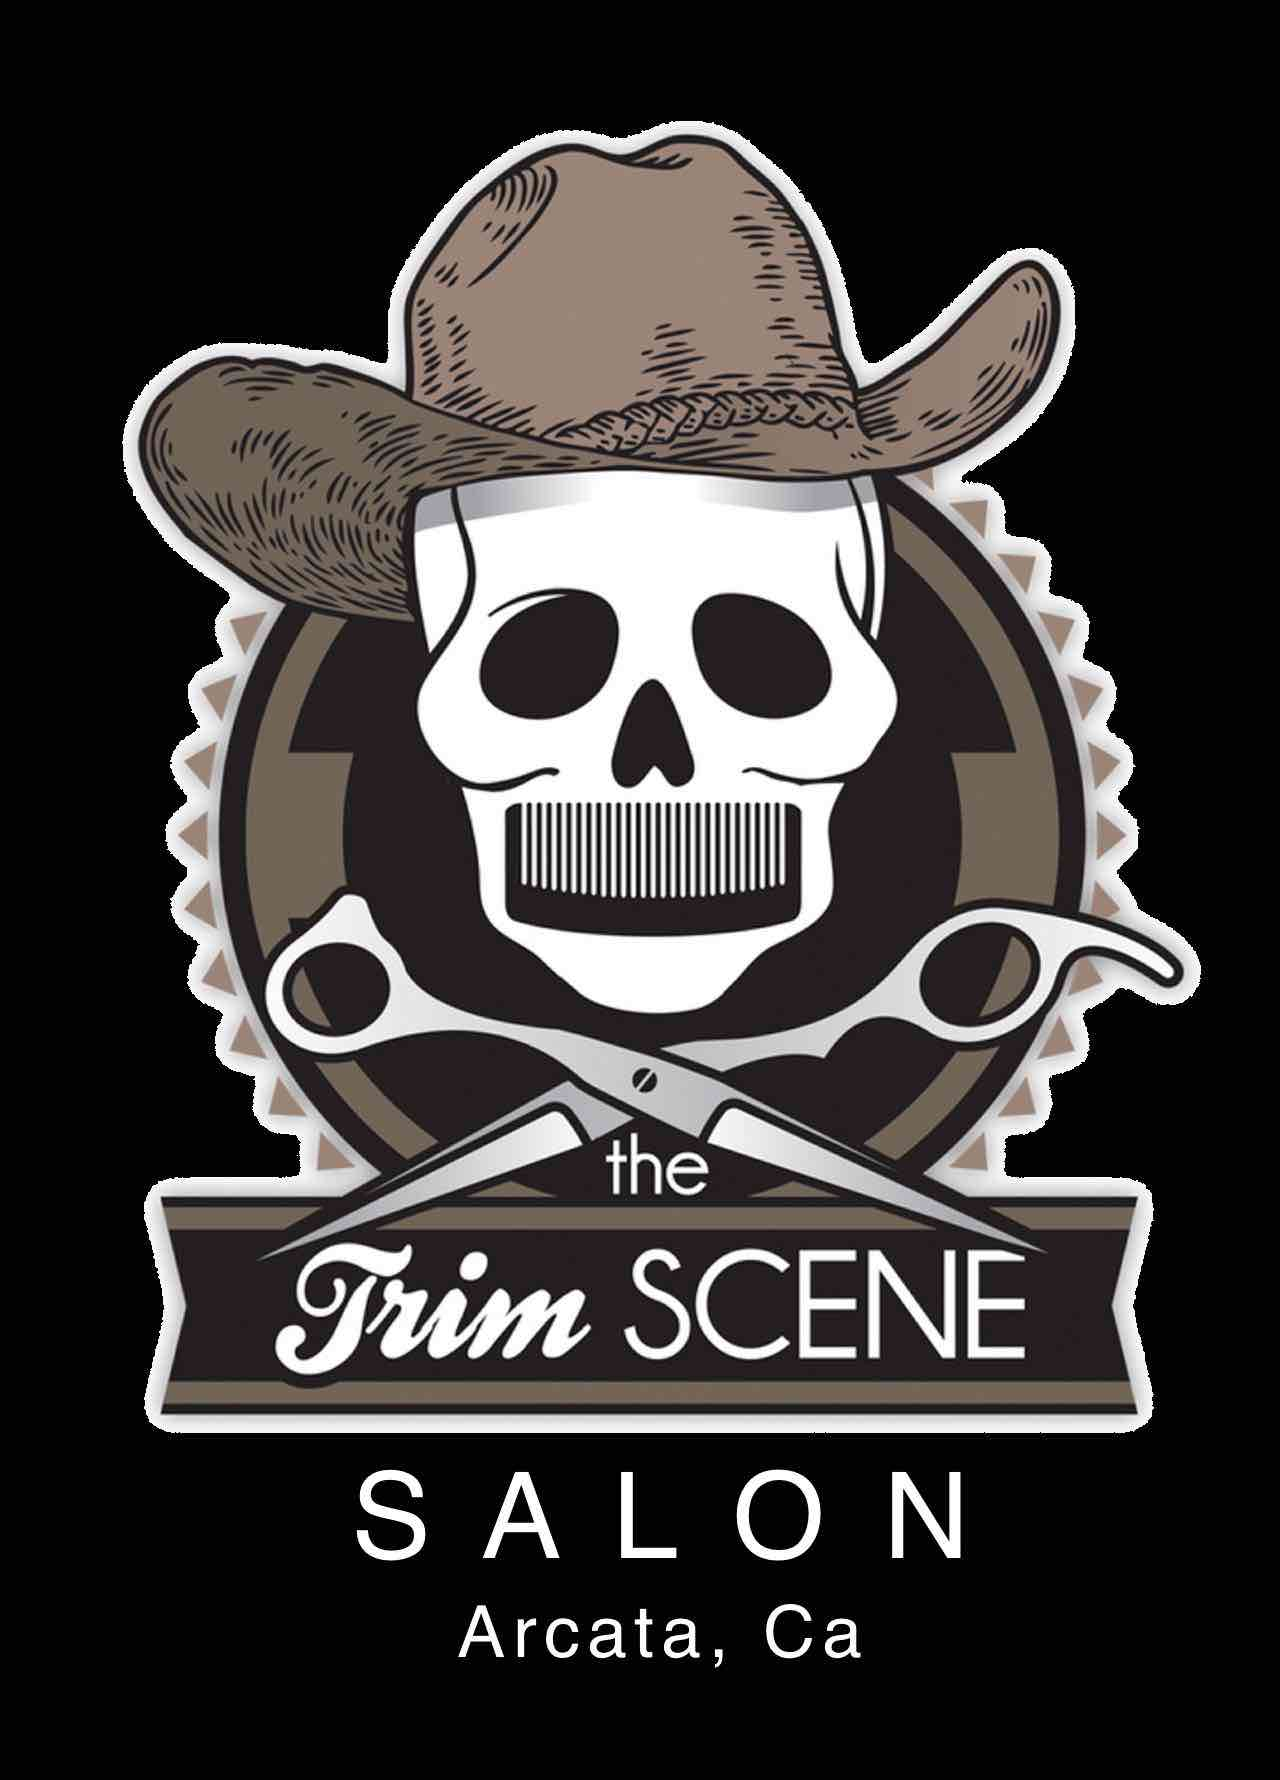 THE TRIM SCENE SALON